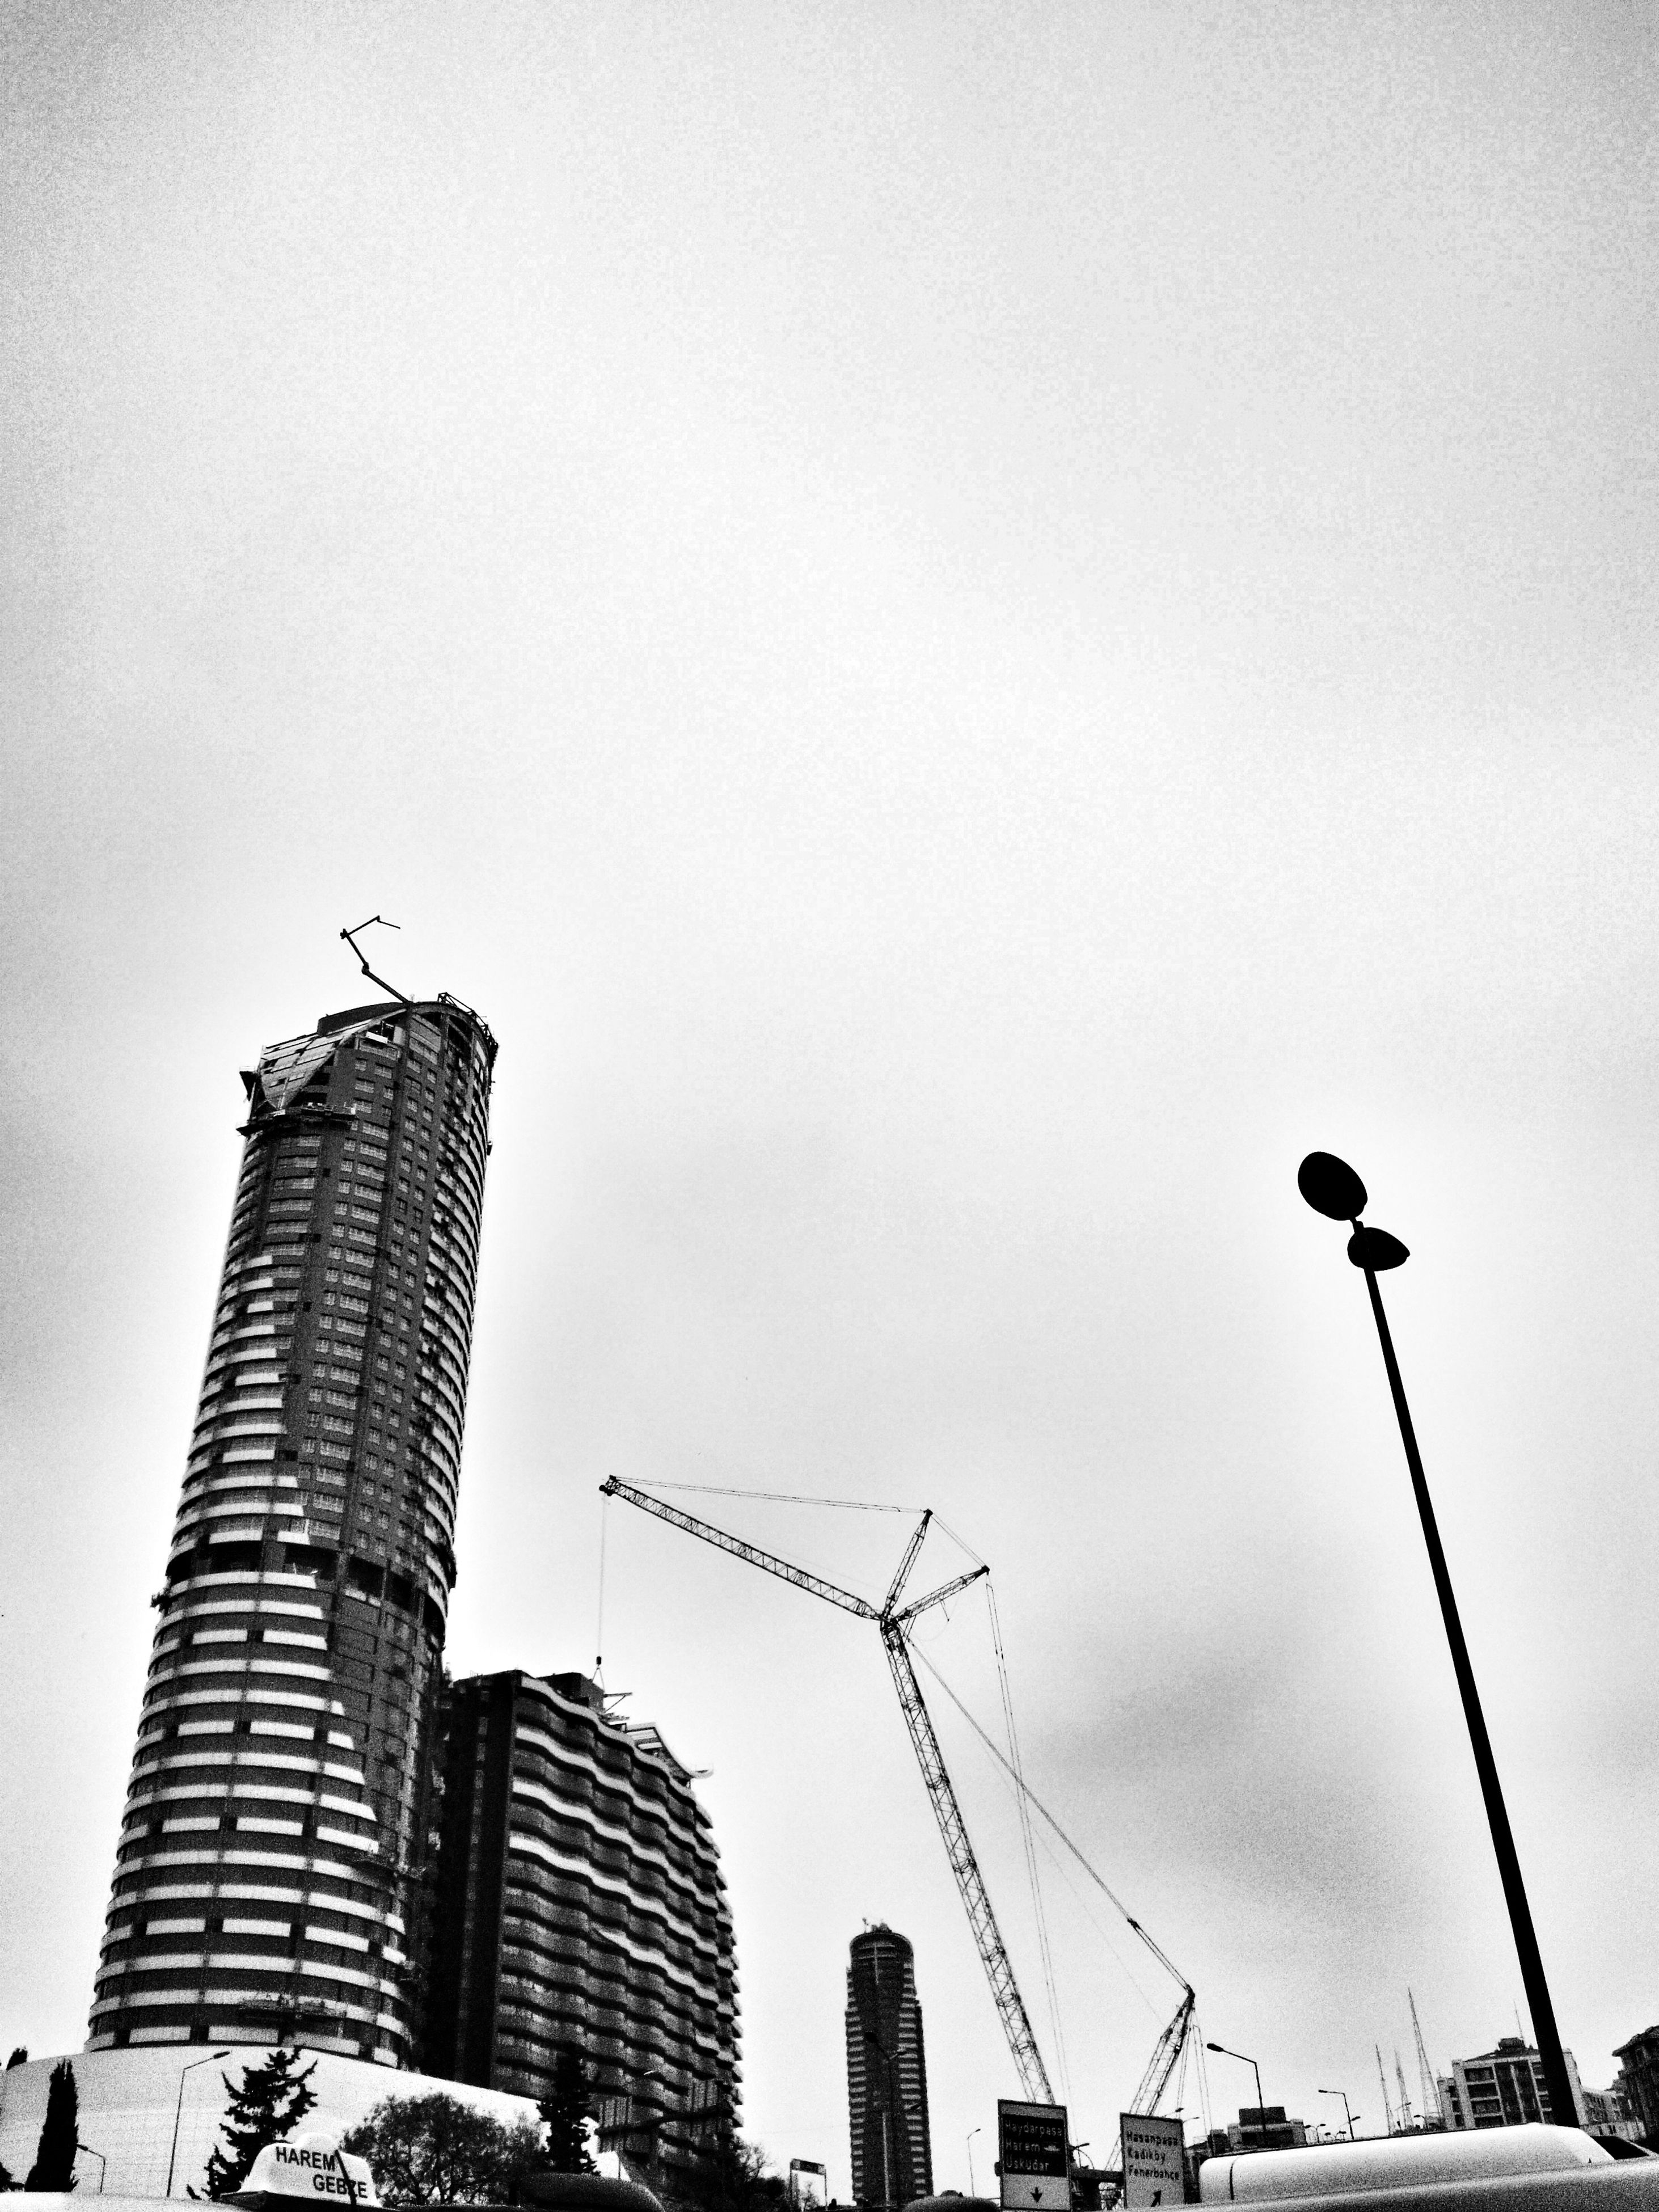 low angle view, architecture, crane - construction machinery, building exterior, built structure, tall - high, construction site, silhouette, development, clear sky, tower, sky, crane, copy space, city, skyscraper, construction, bird, animals in the wild, incomplete